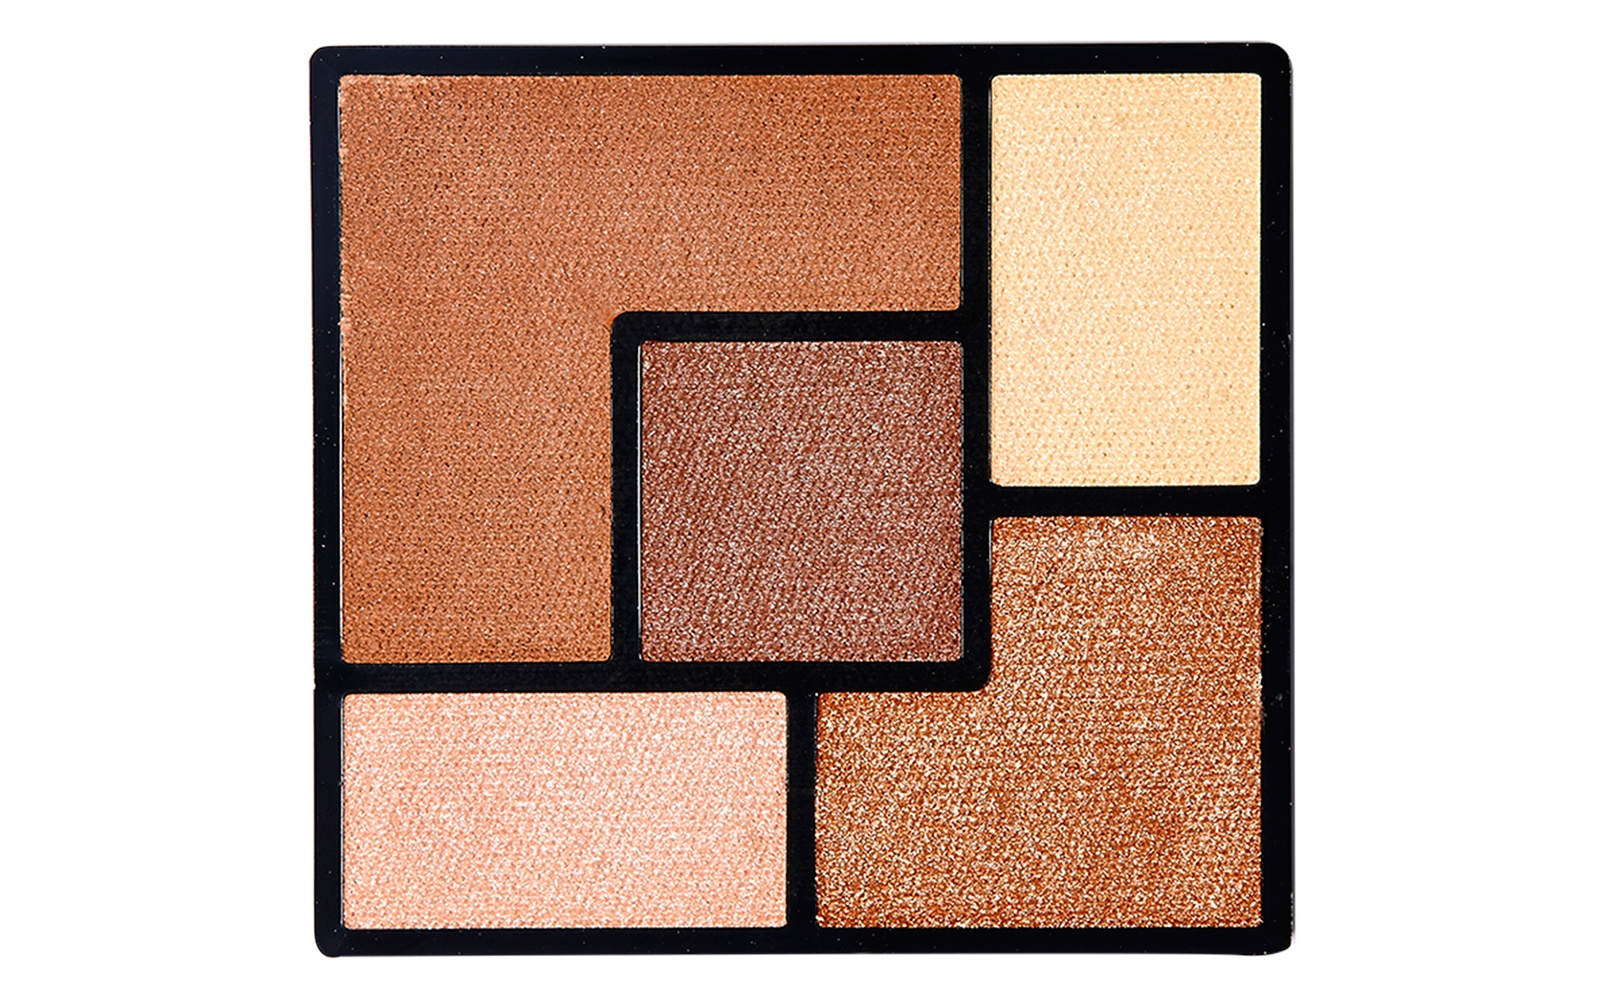 Yves Saint Laurent Couture Palette N. 12 Mauresques.